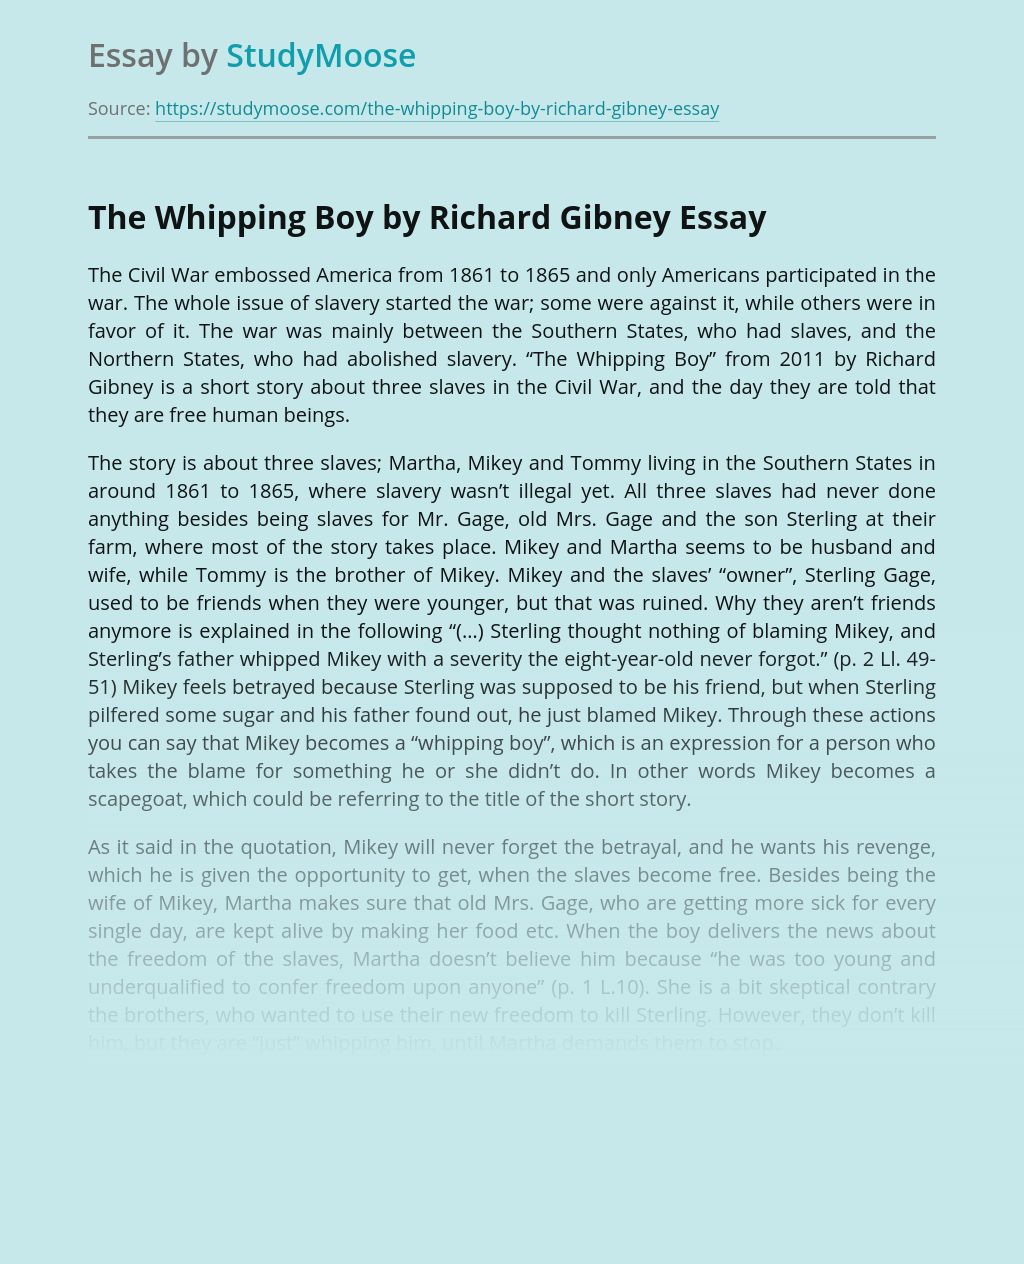 The Whipping Boy by Richard Gibney